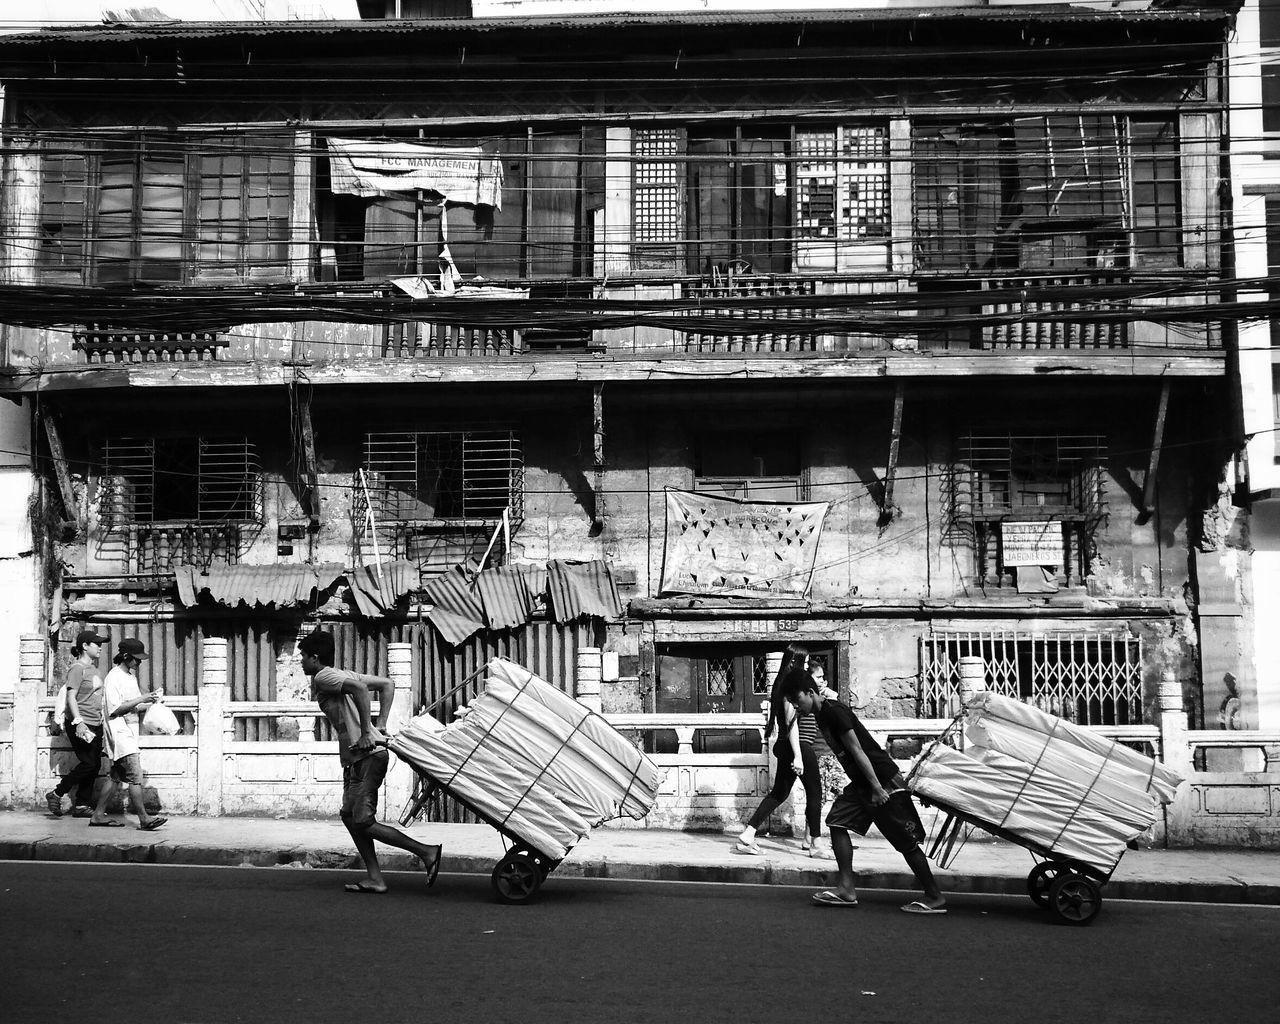 Monochrome Philippines Streetphotography The Week Of Eyeem Black And White Outdoor Photography Still Life Old Fashion Style